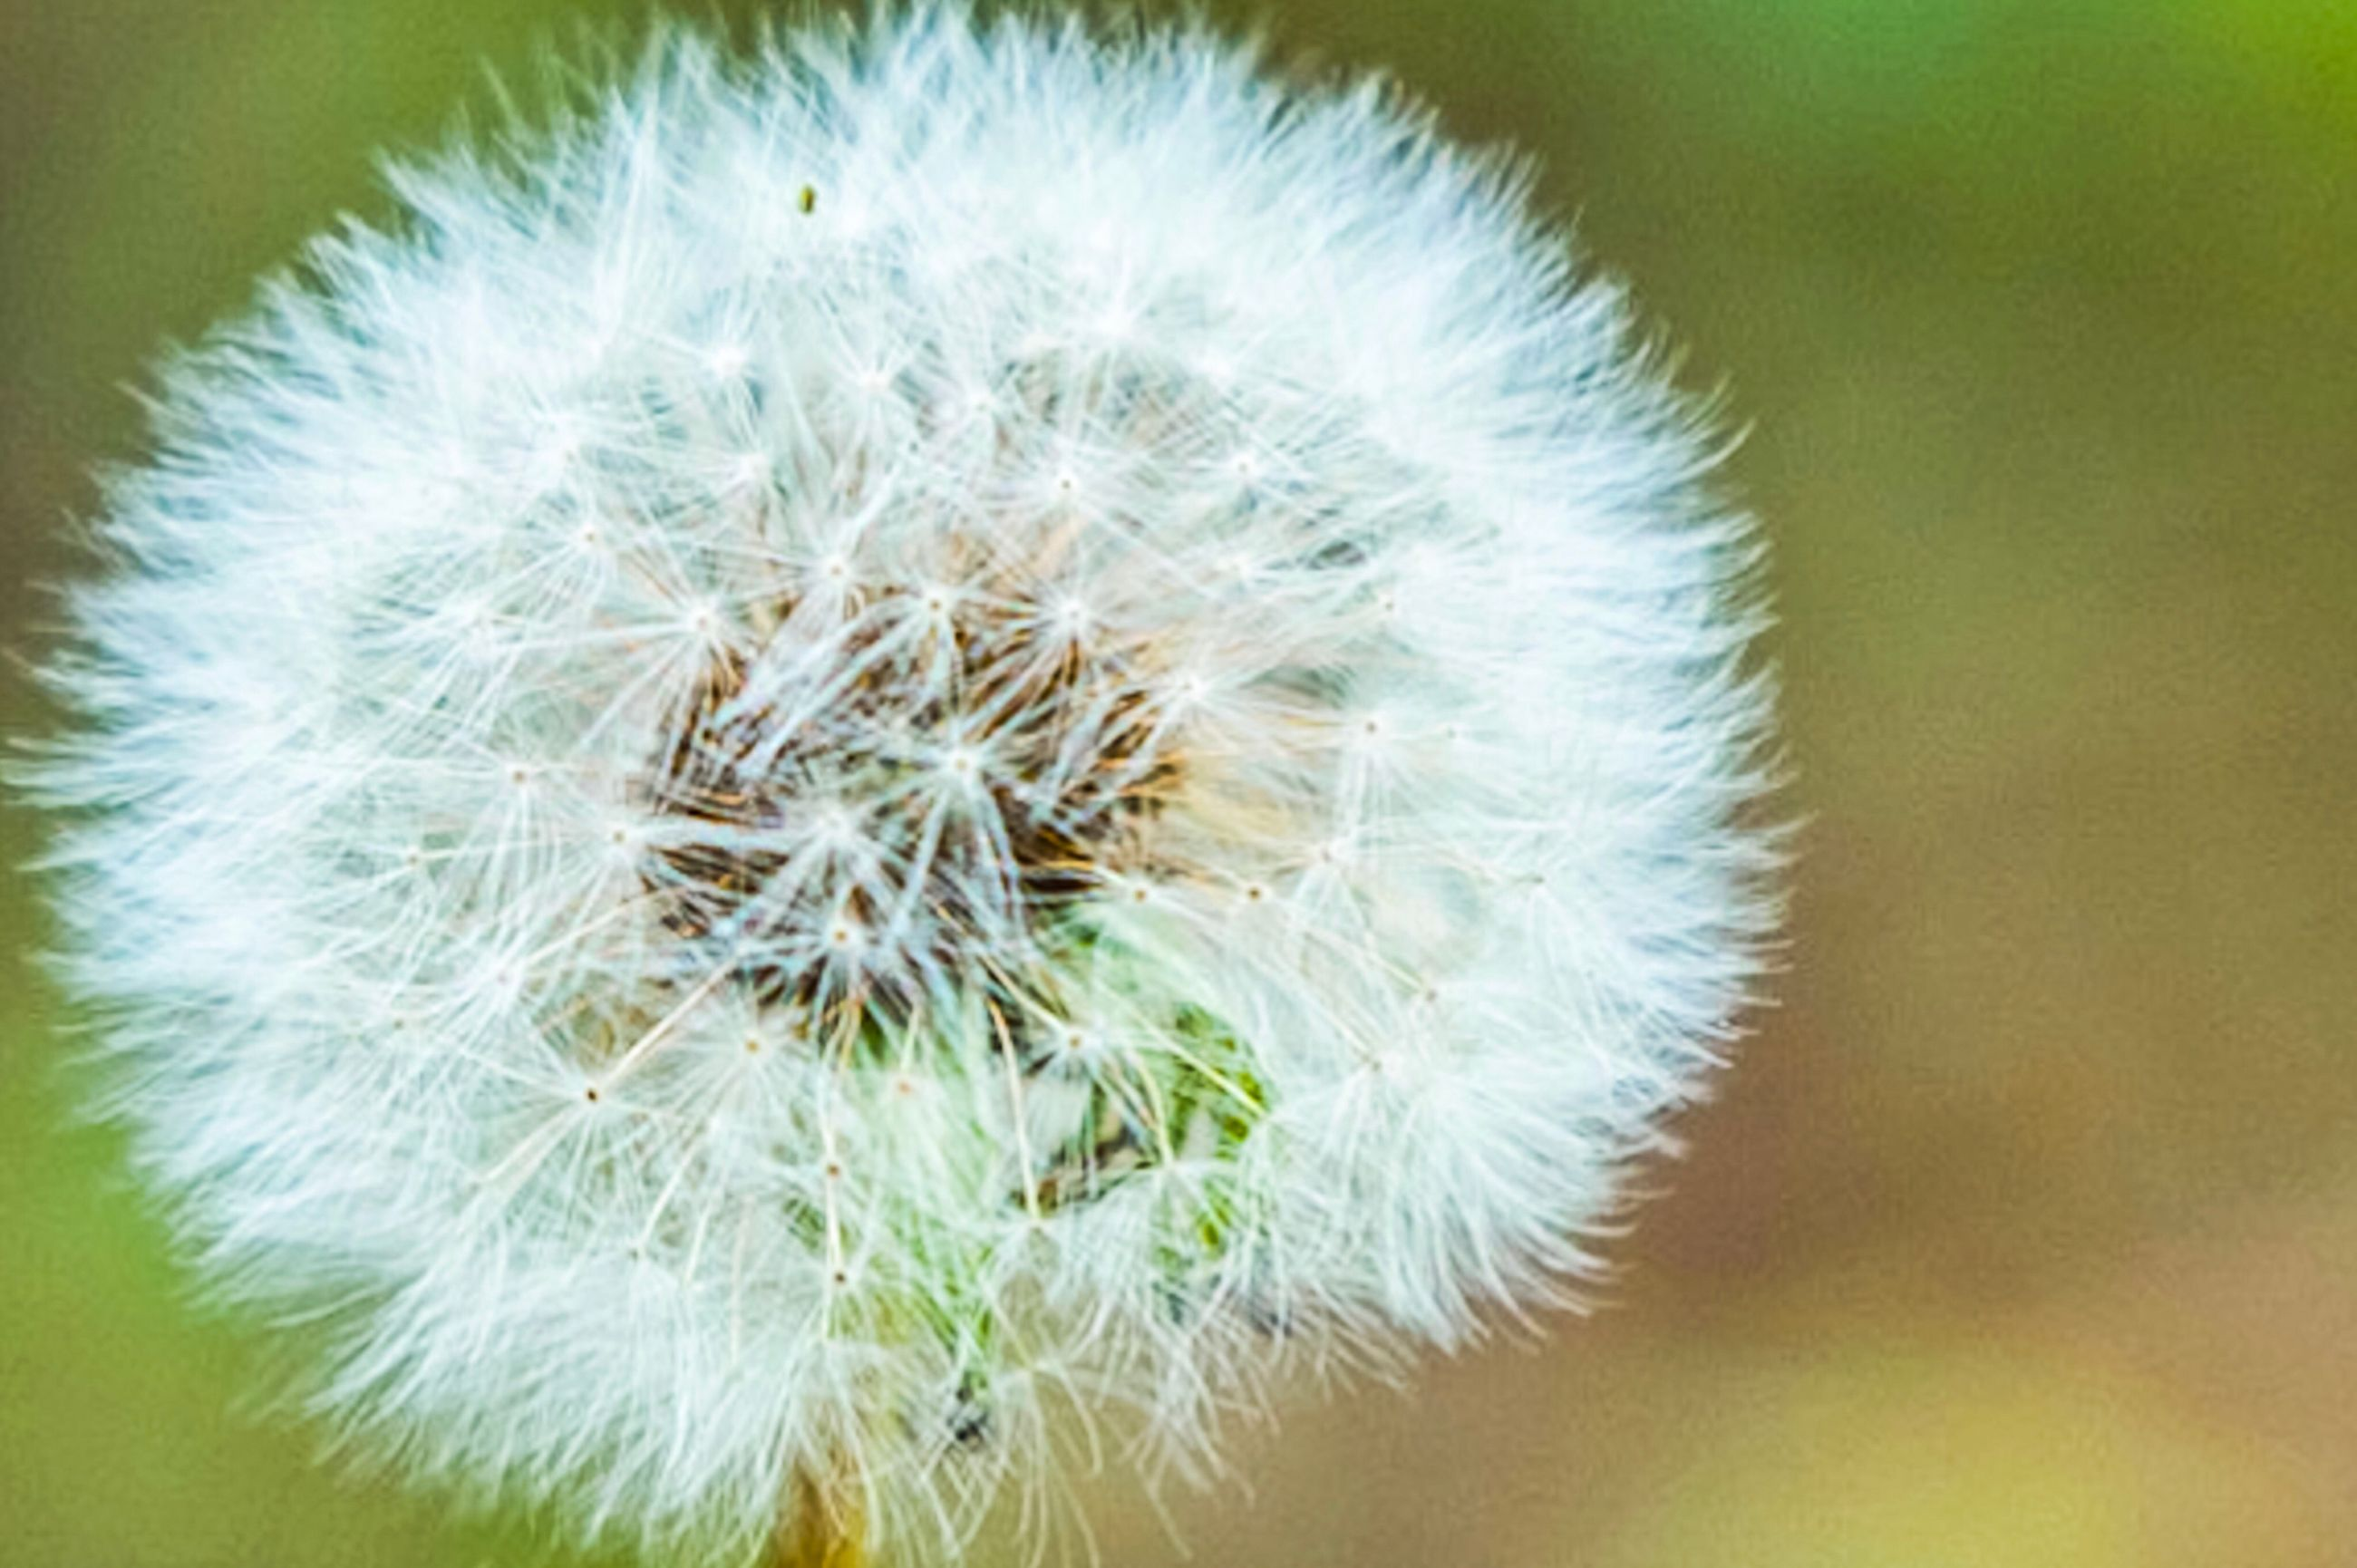 flower, dandelion, fragility, close-up, nature, softness, flower head, growth, beauty in nature, plant, freshness, wildflower, uncultivated, focus on foreground, seed, no people, day, springtime, outdoors